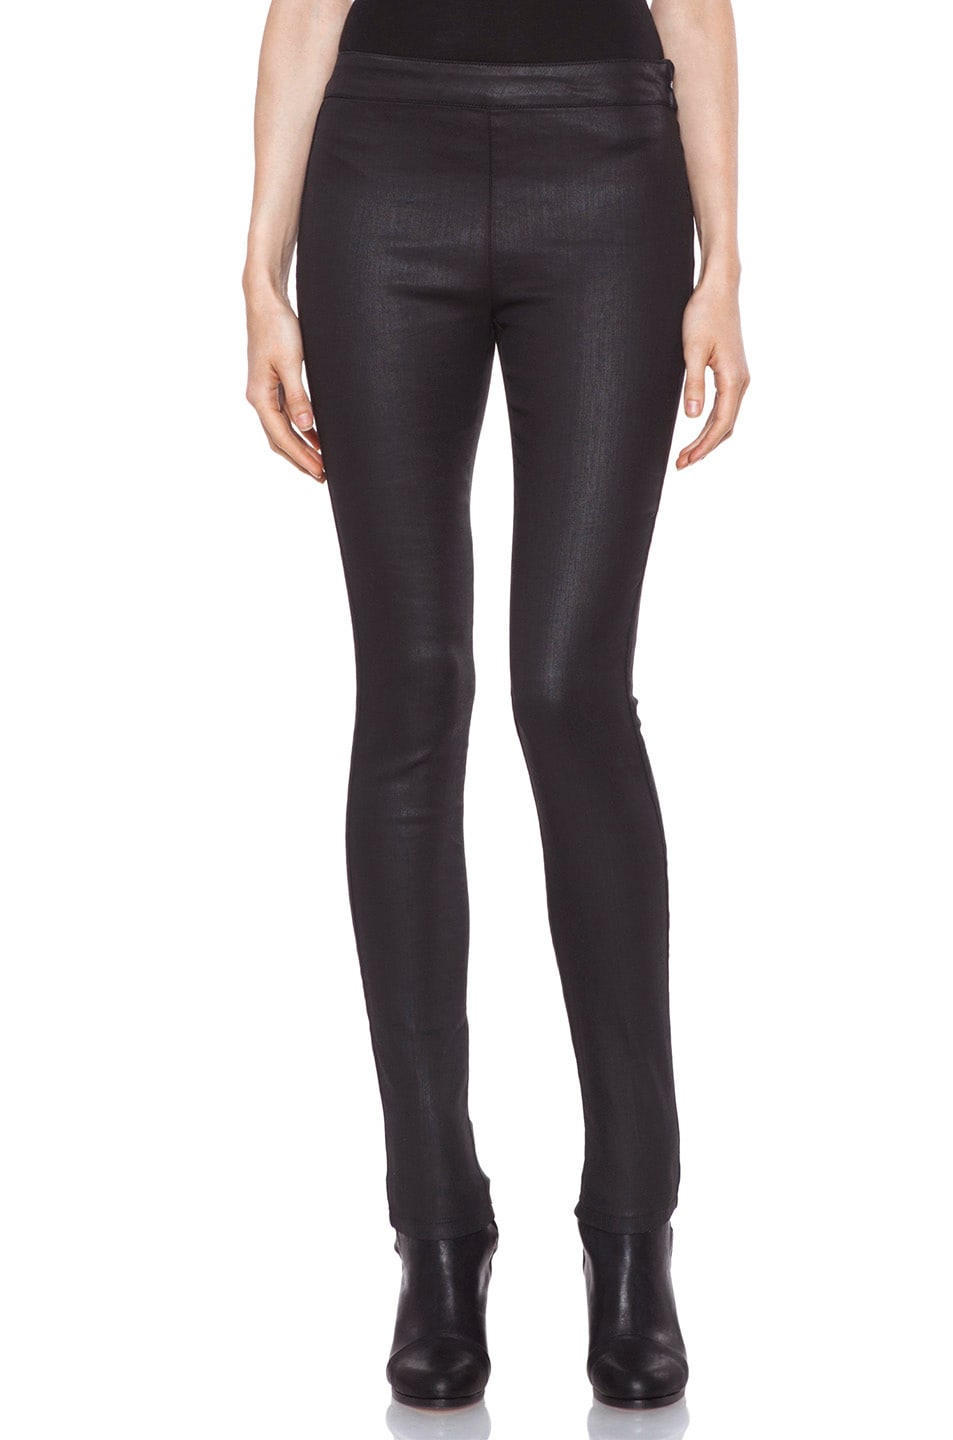 Image 1 of Vanessa Bruno Coated Legging in Black